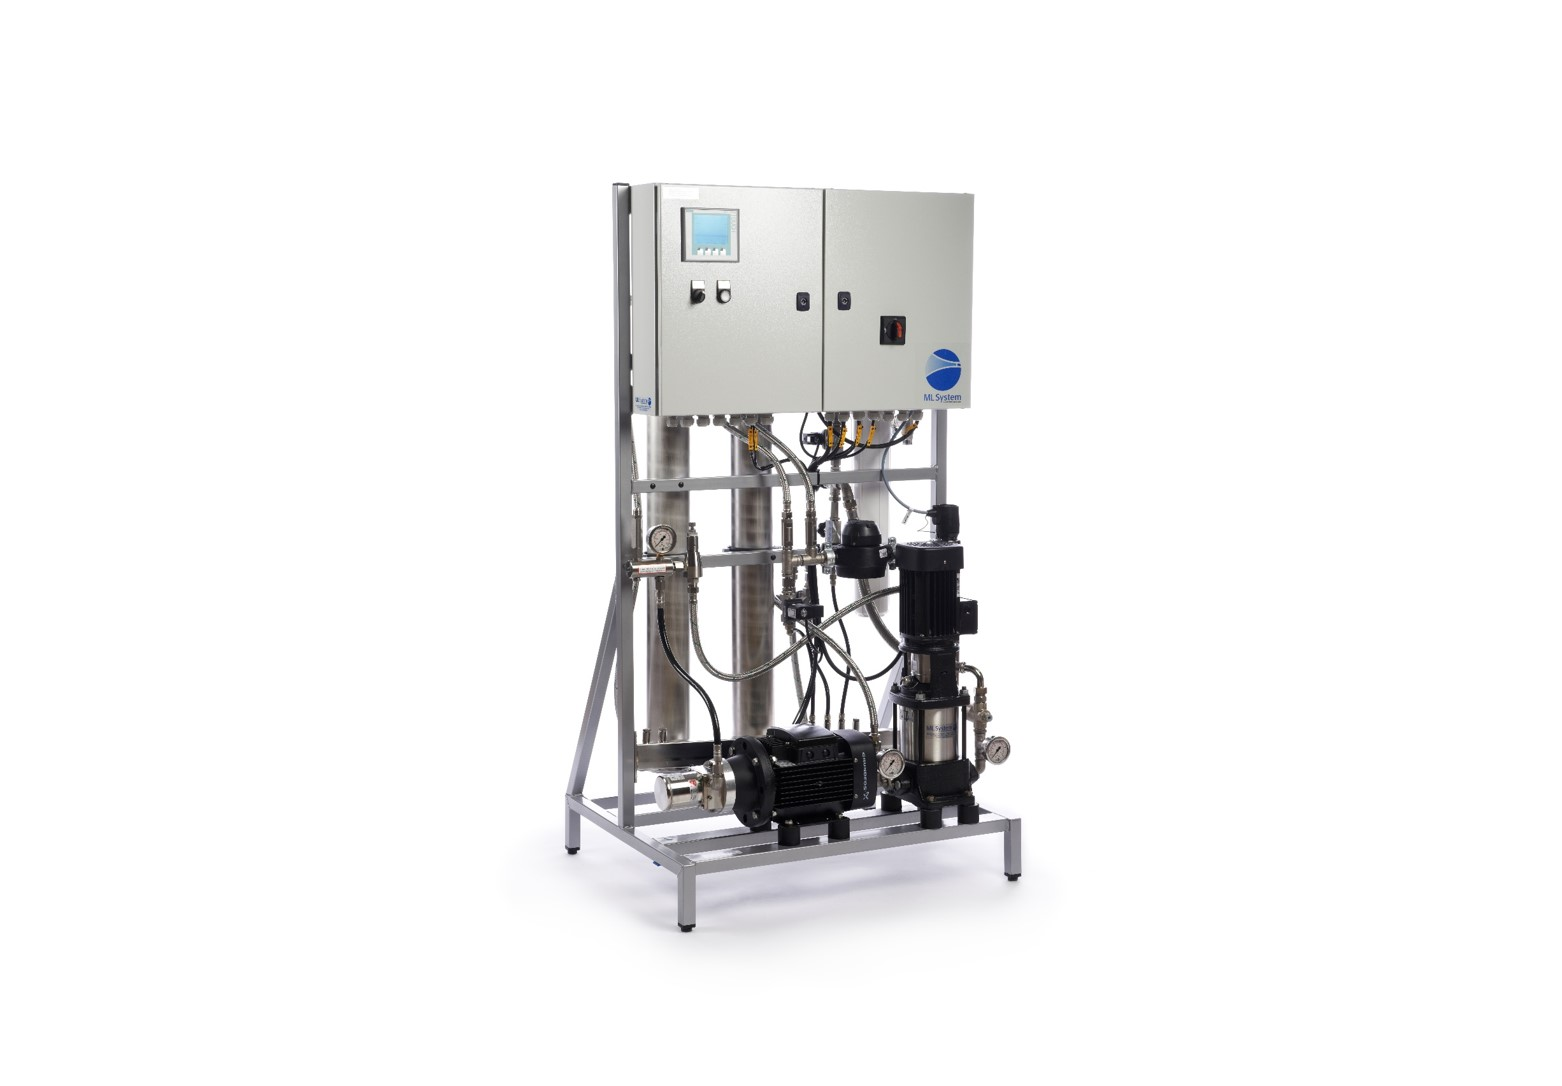 a56479a73329b9c3ccc4ead63c7371e43388ad65?image_crop_resized=640x445 mlp ro water treatment for the ml air humidification systems Reverse Osmosis Flow Diagram at crackthecode.co